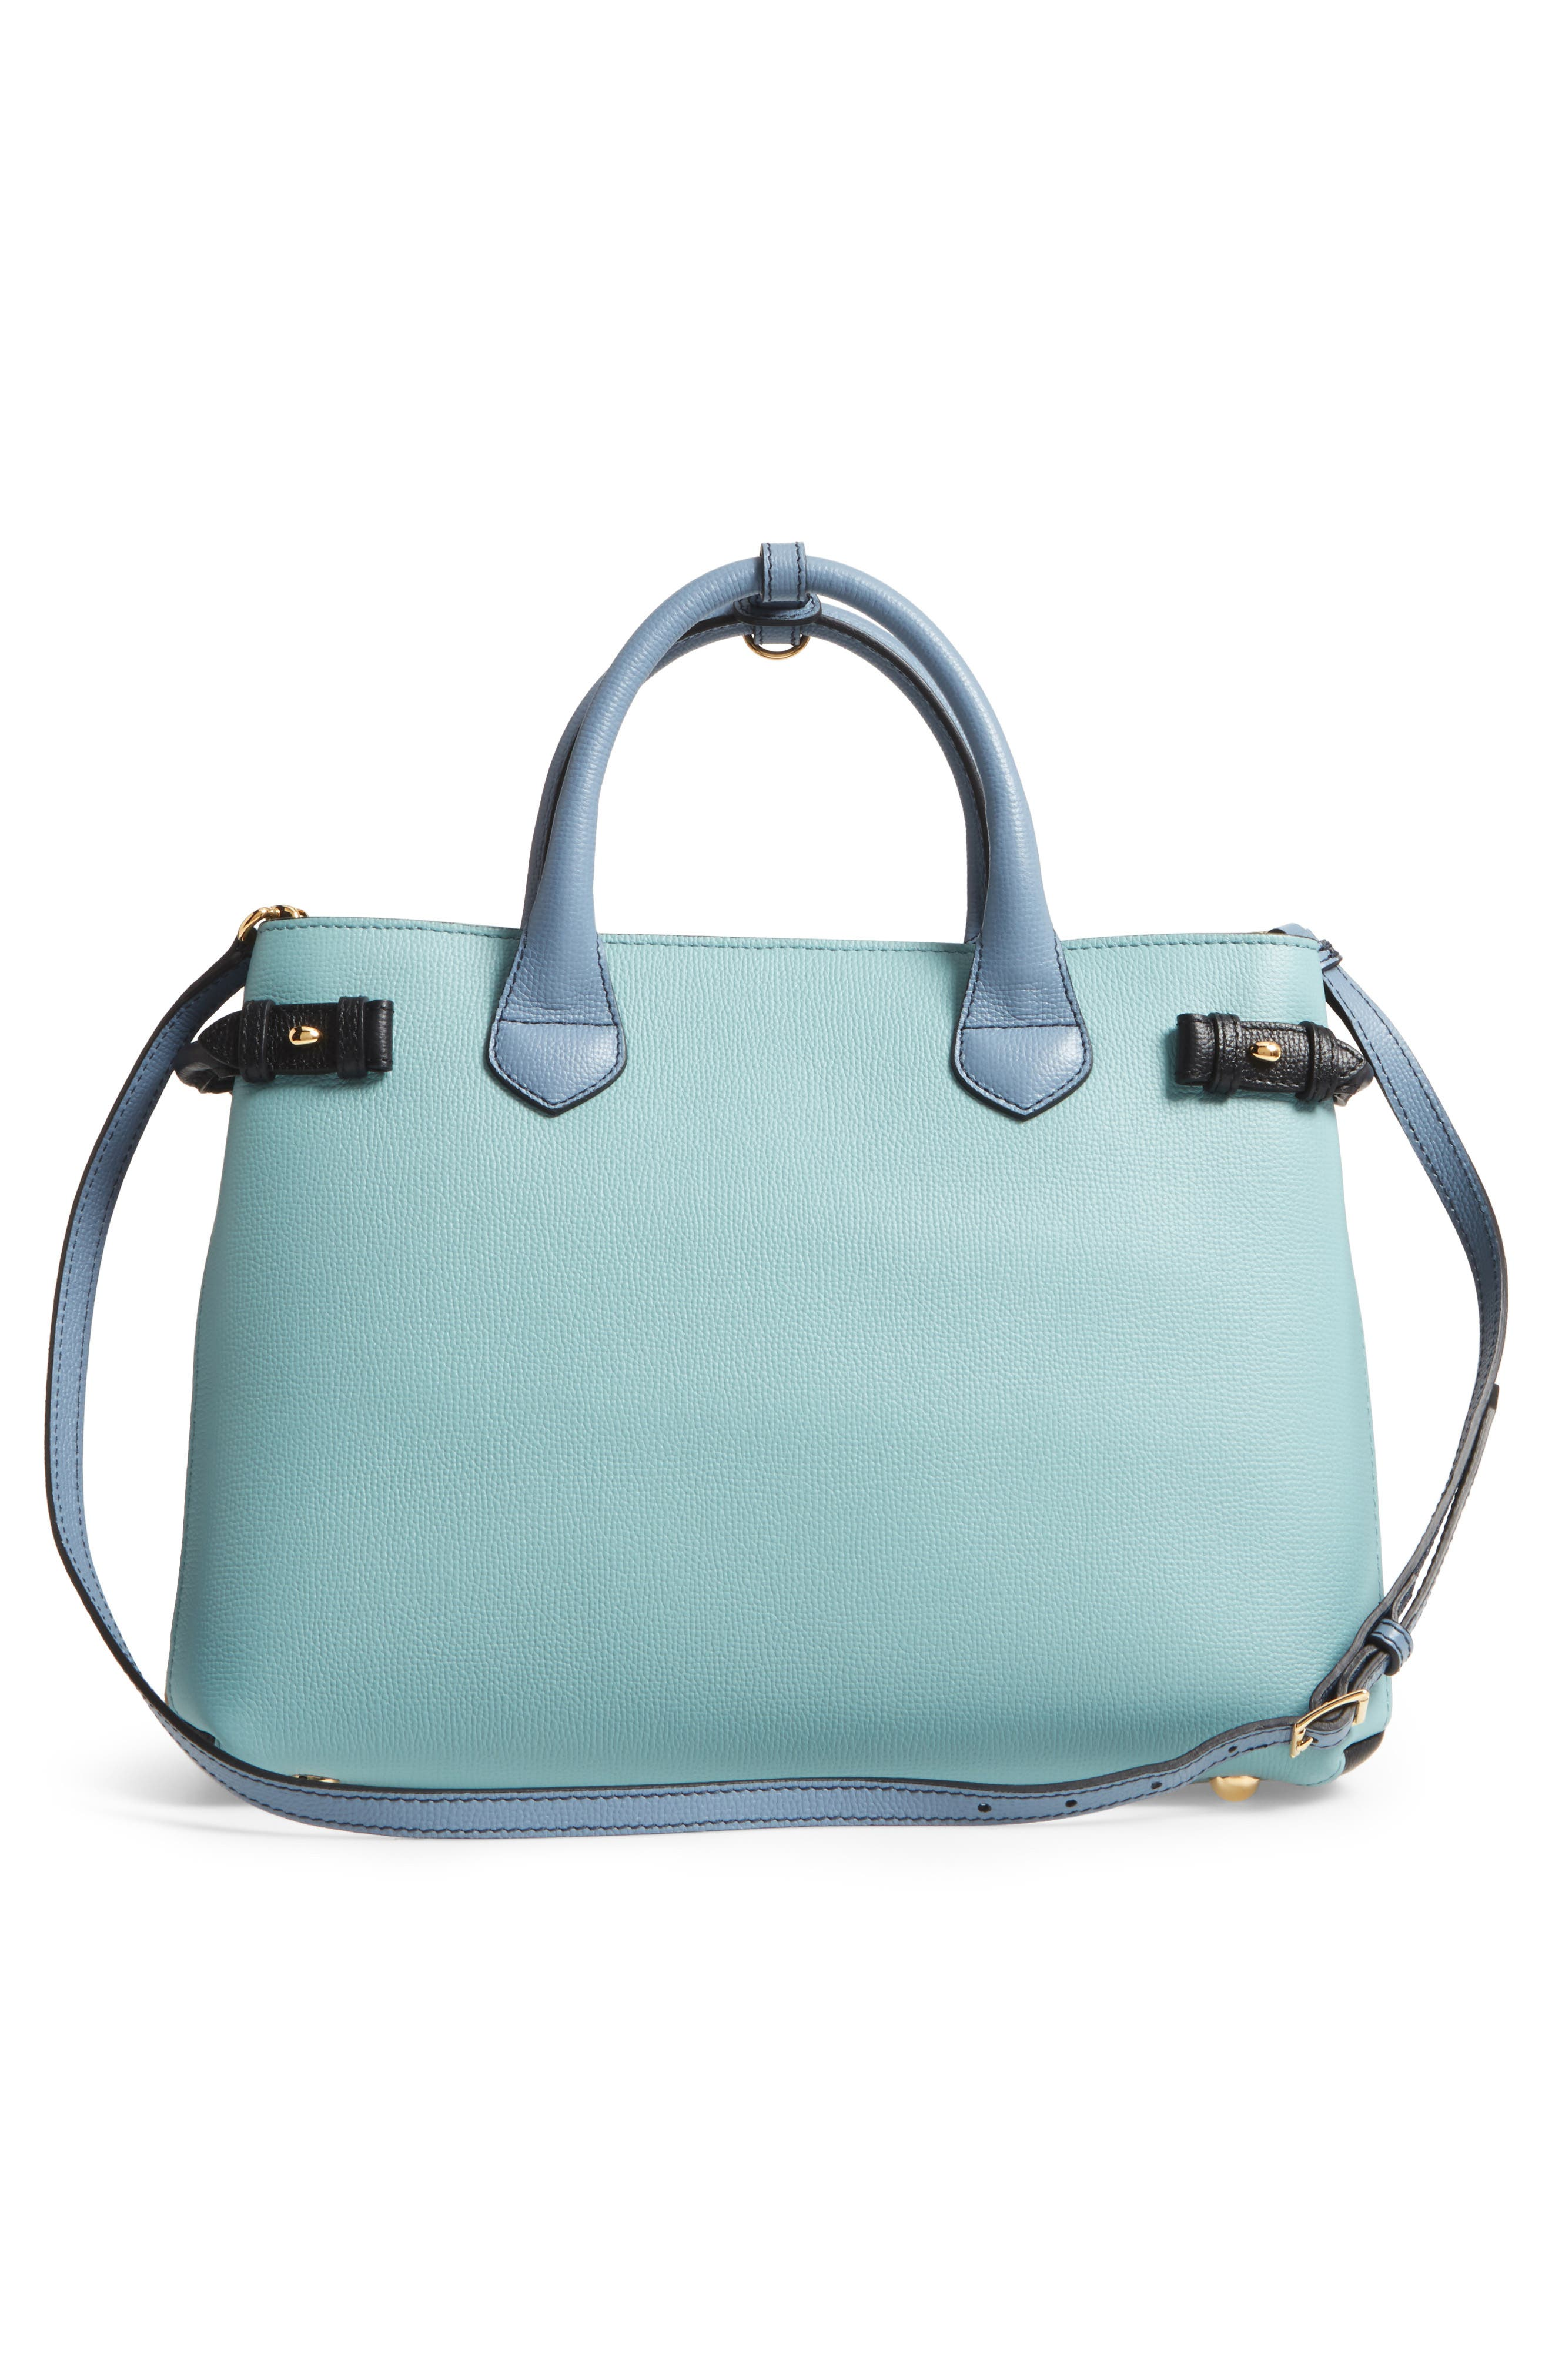 Medium Banner House Check & Leather Tote,                             Alternate thumbnail 2, color,                             Pale Opal/Slate Blue